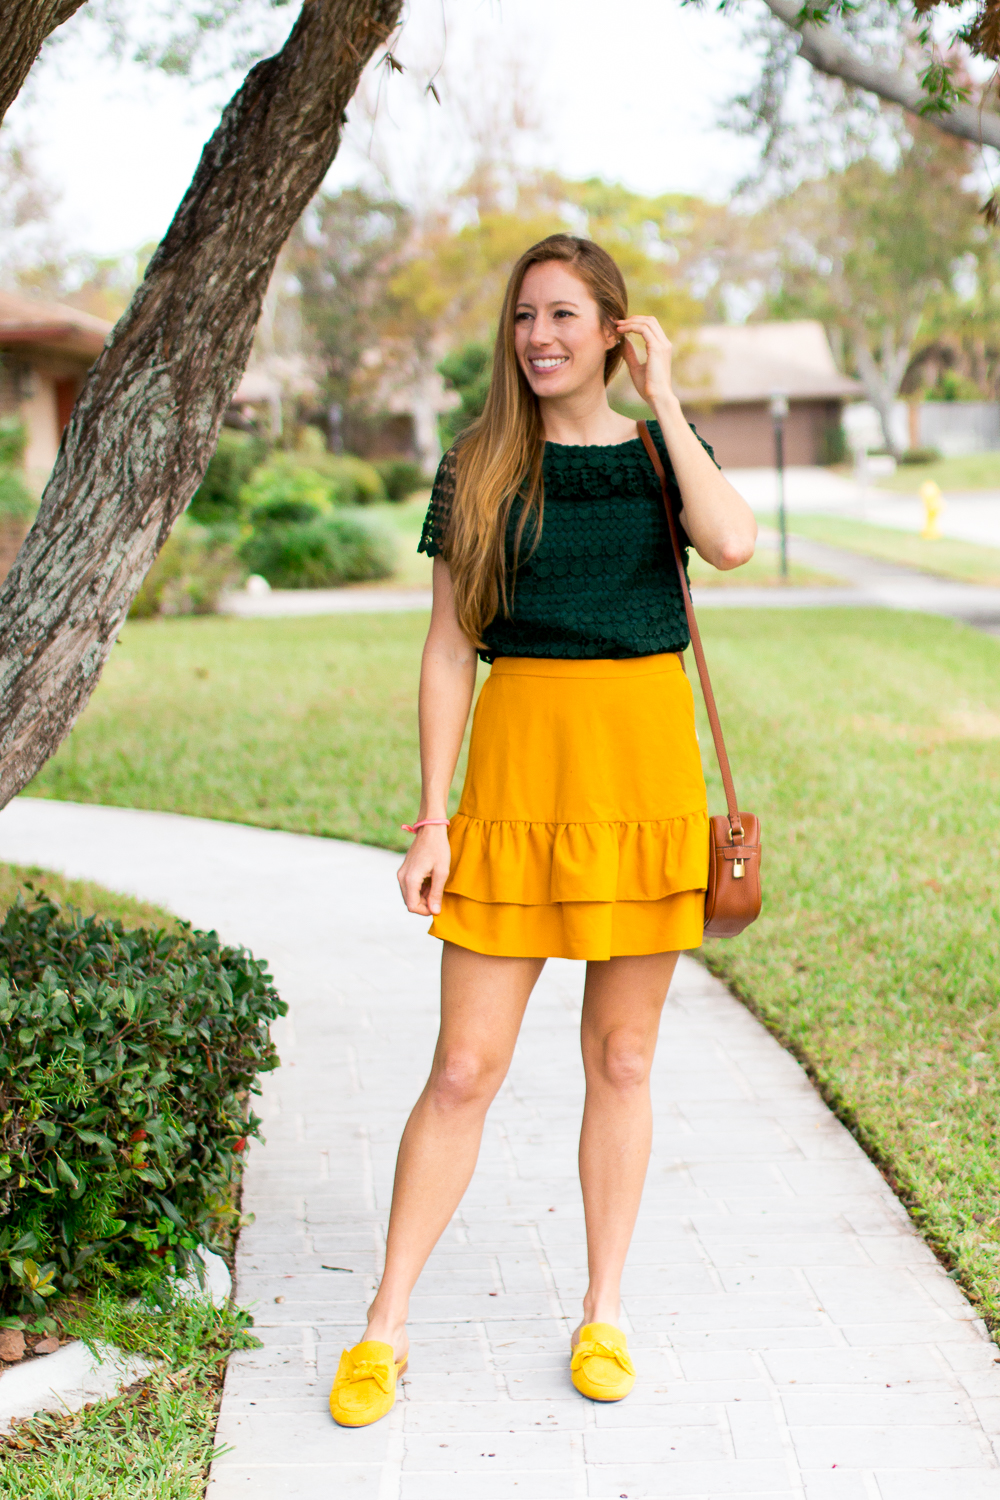 Mixing and Matching Seasonal Colors into Your Wardrobe | How to Dress for Fall | How to Incorporate Fall Colors in Your Wardrobe | Fall Outfit Ideas 2018 | Mustard Ruffle Skirt | Emerald Top | Mustard Loafer | Leather Bag - Sunshine Style